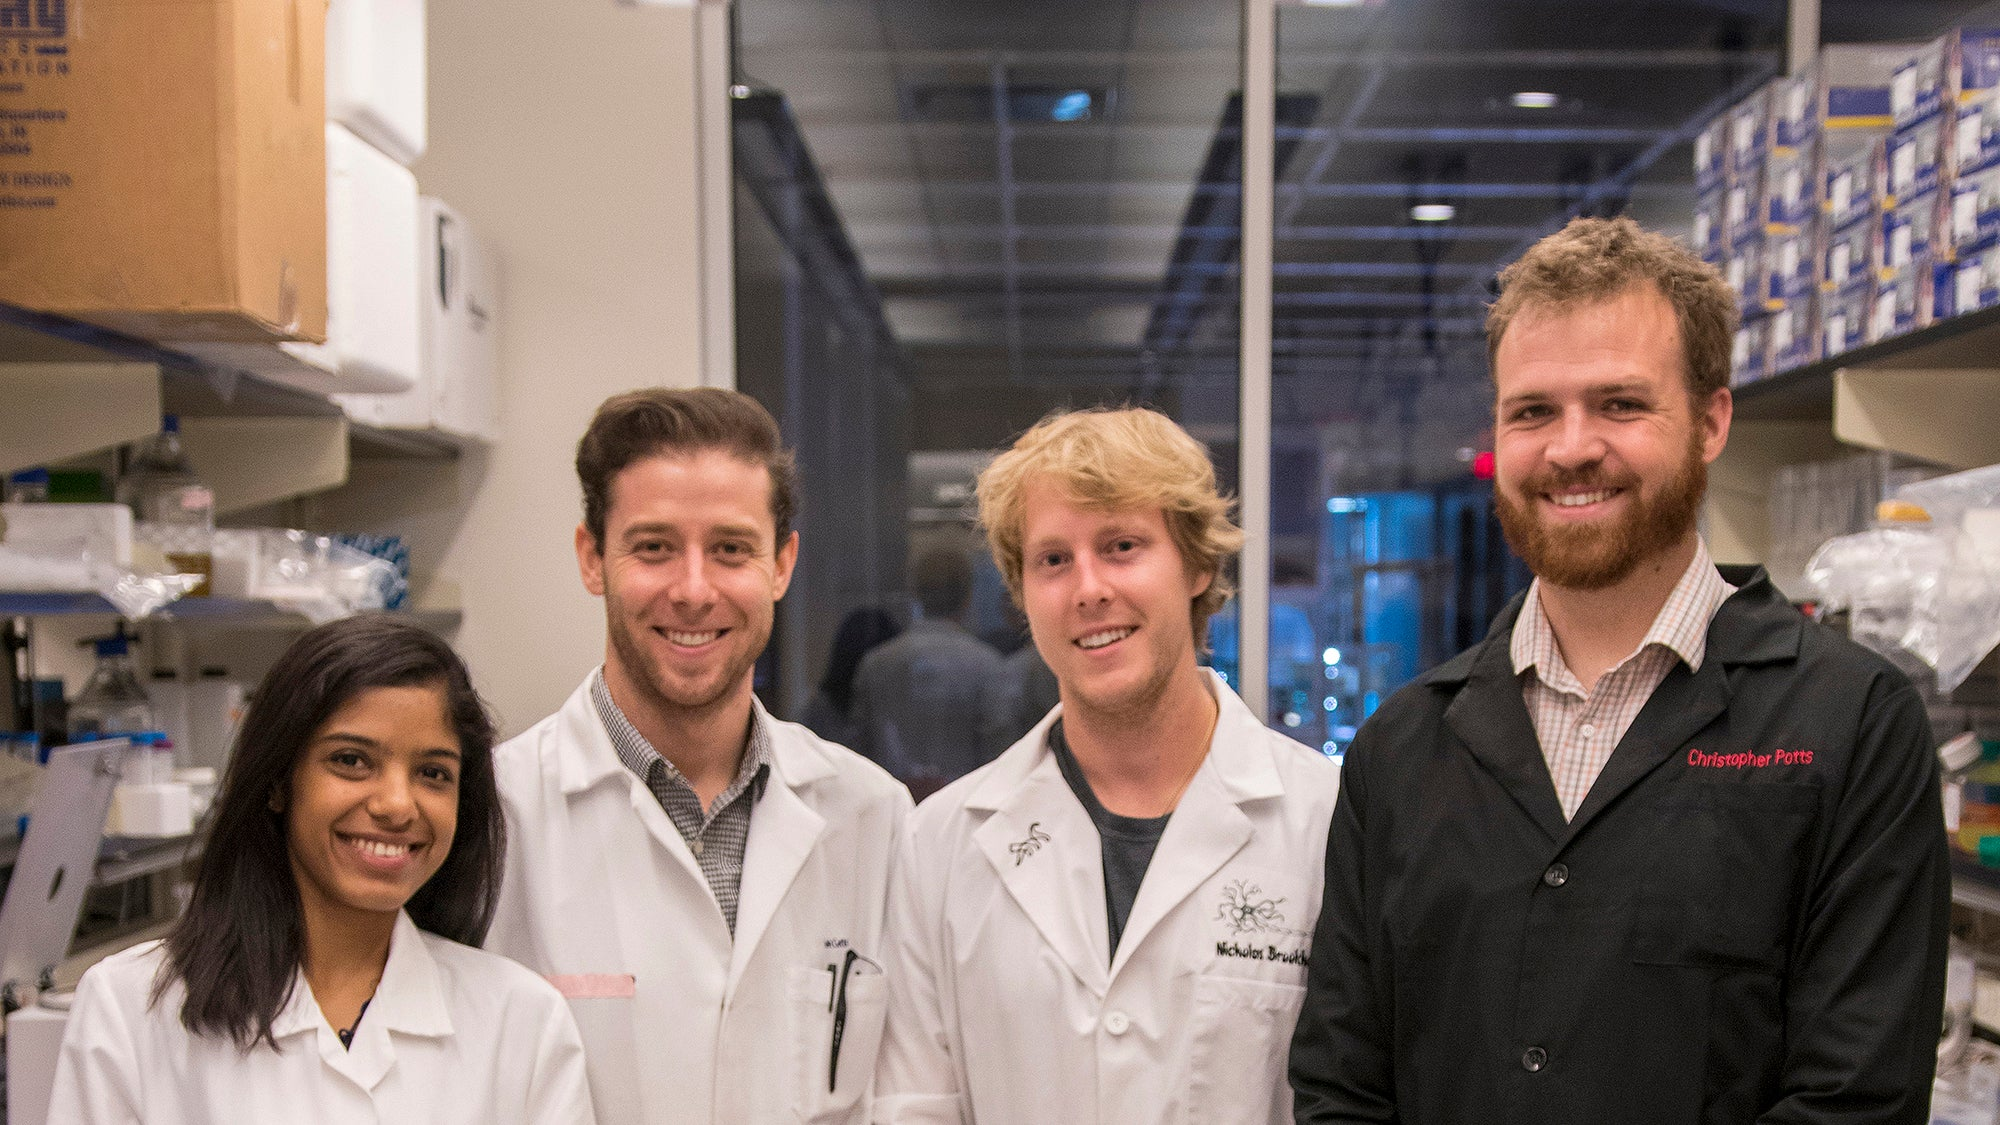 Student Awards: The stem cell wizards of ASU's Brafman Lab. Left to right: Sreedevi Raman, Josh Cutts, Nick Brookhouser and Christopher Potts. Photographer: Marco-Alexis Chaira/ASU